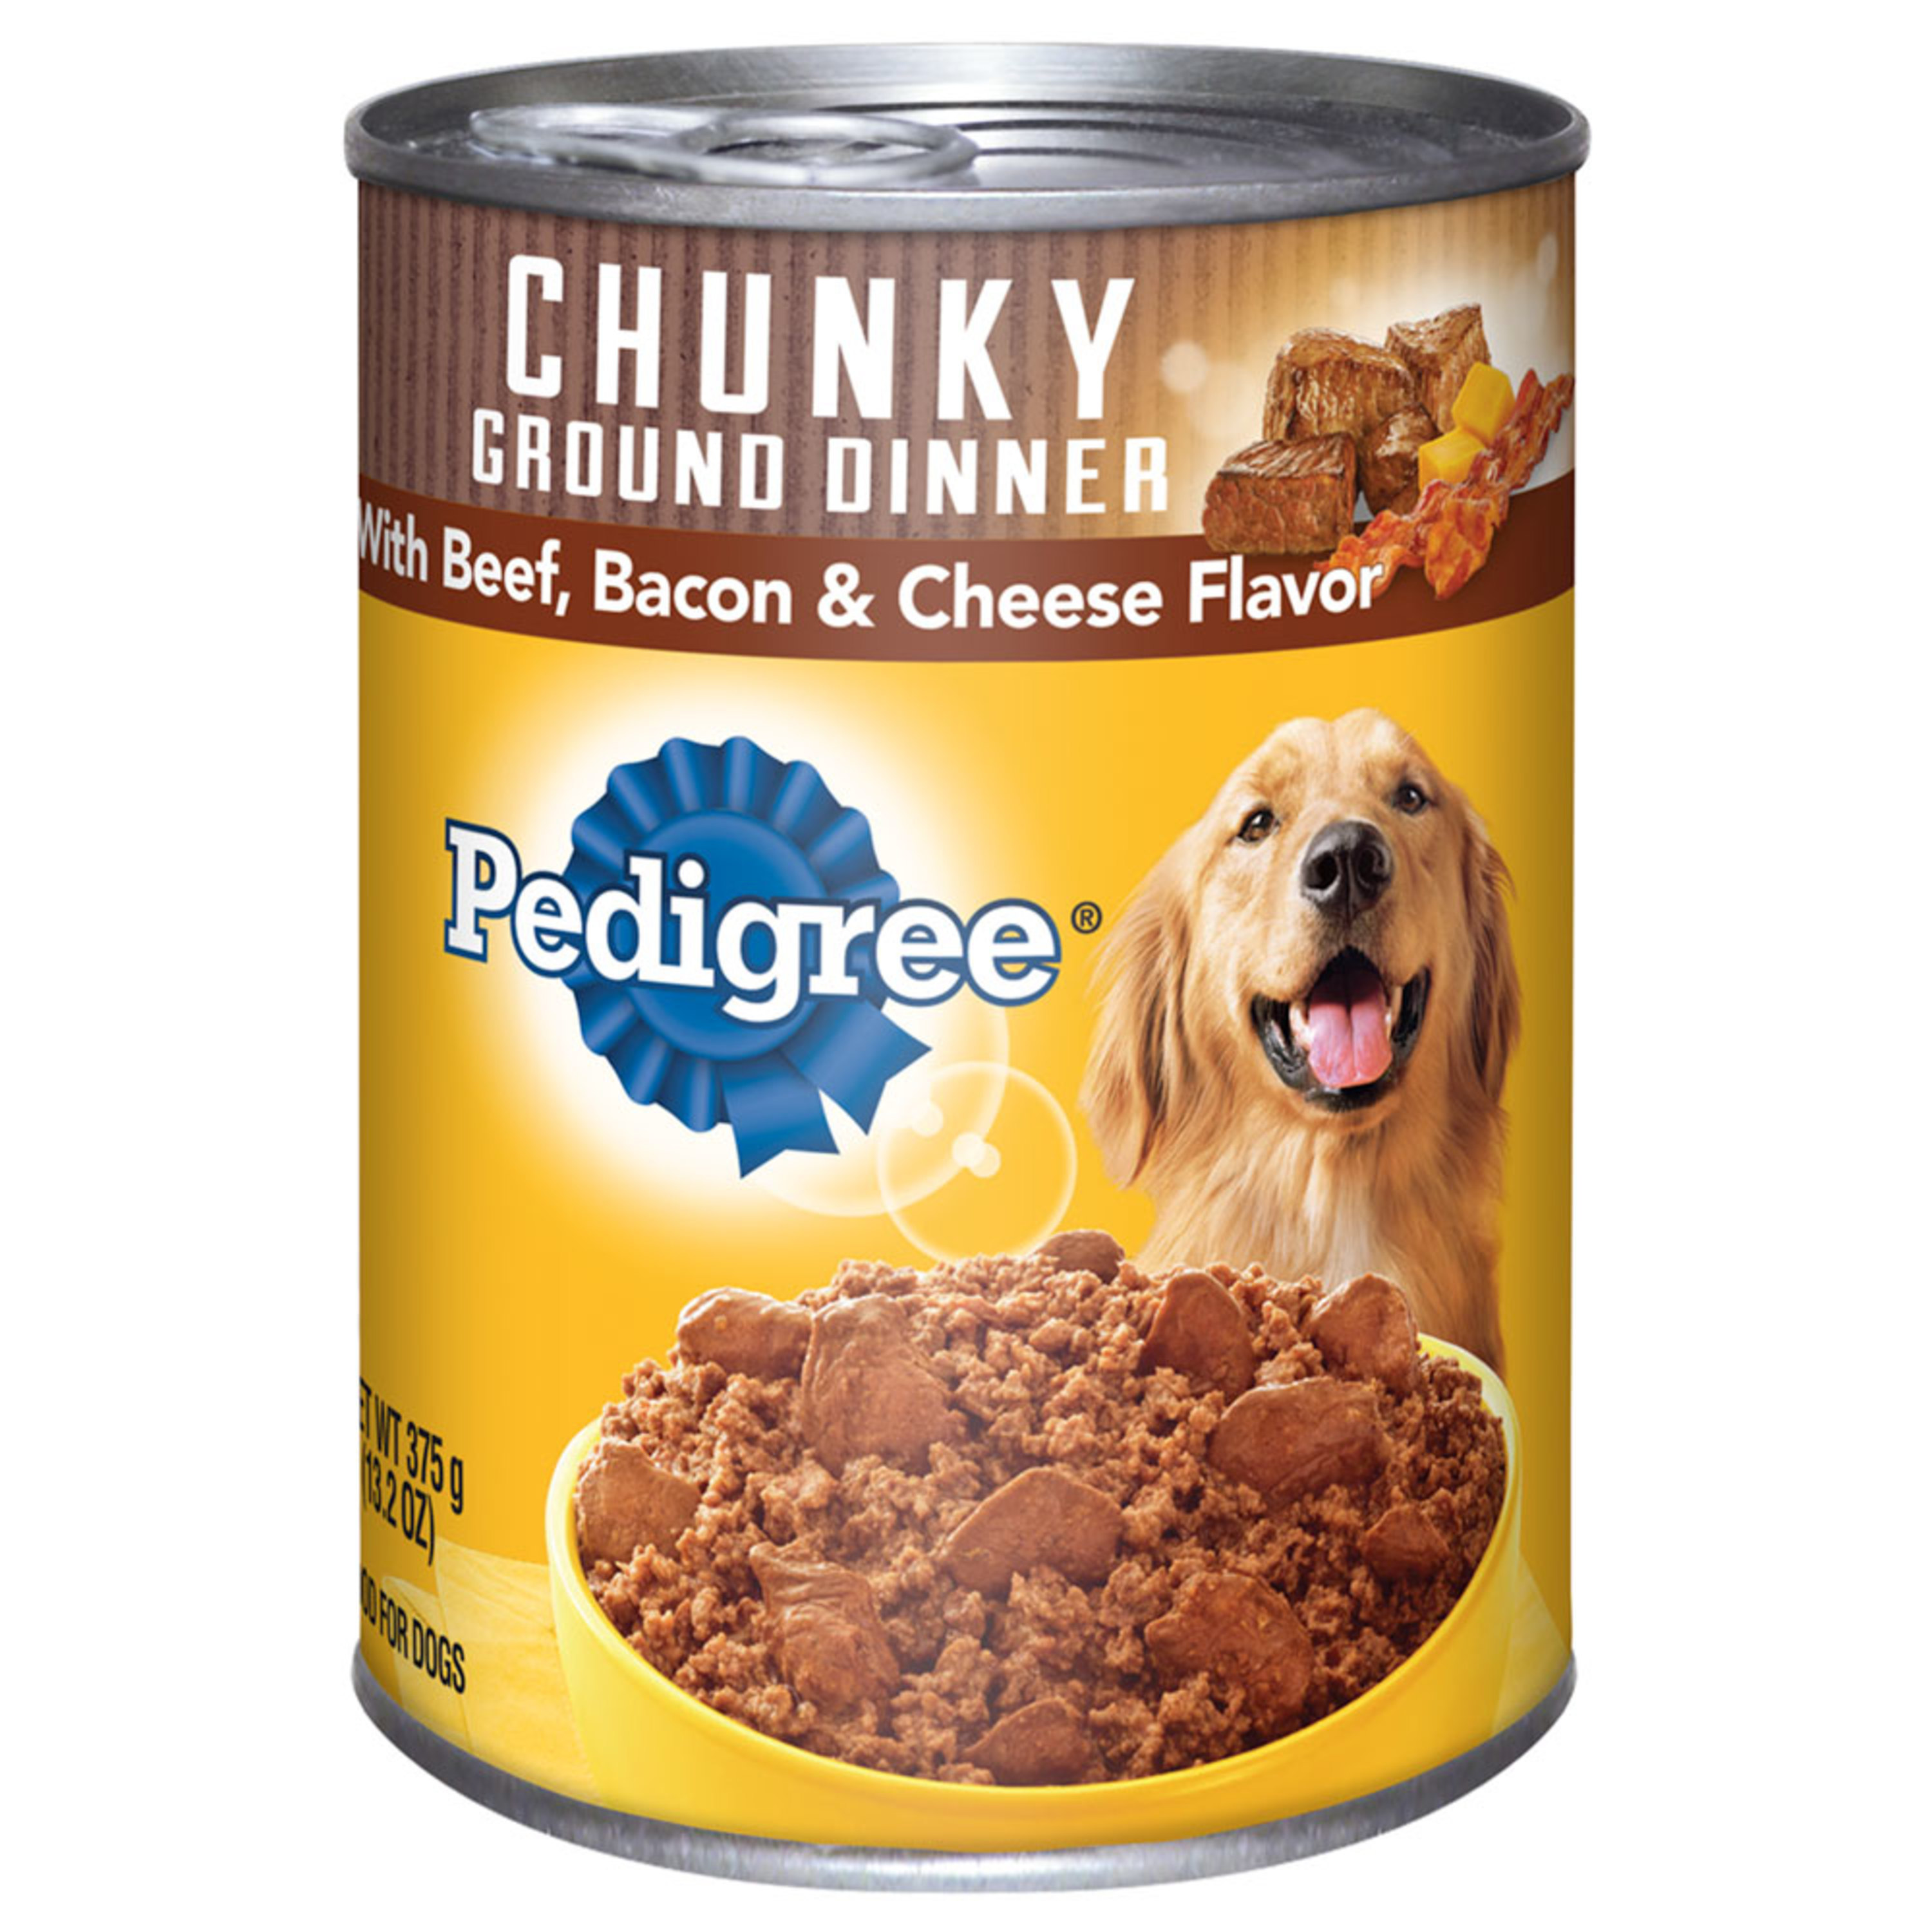 Pedigree Chunky Ground Dinner With Beef, Bacon & Cheese Flavor Wet Dog Food, 13.2 Oz.